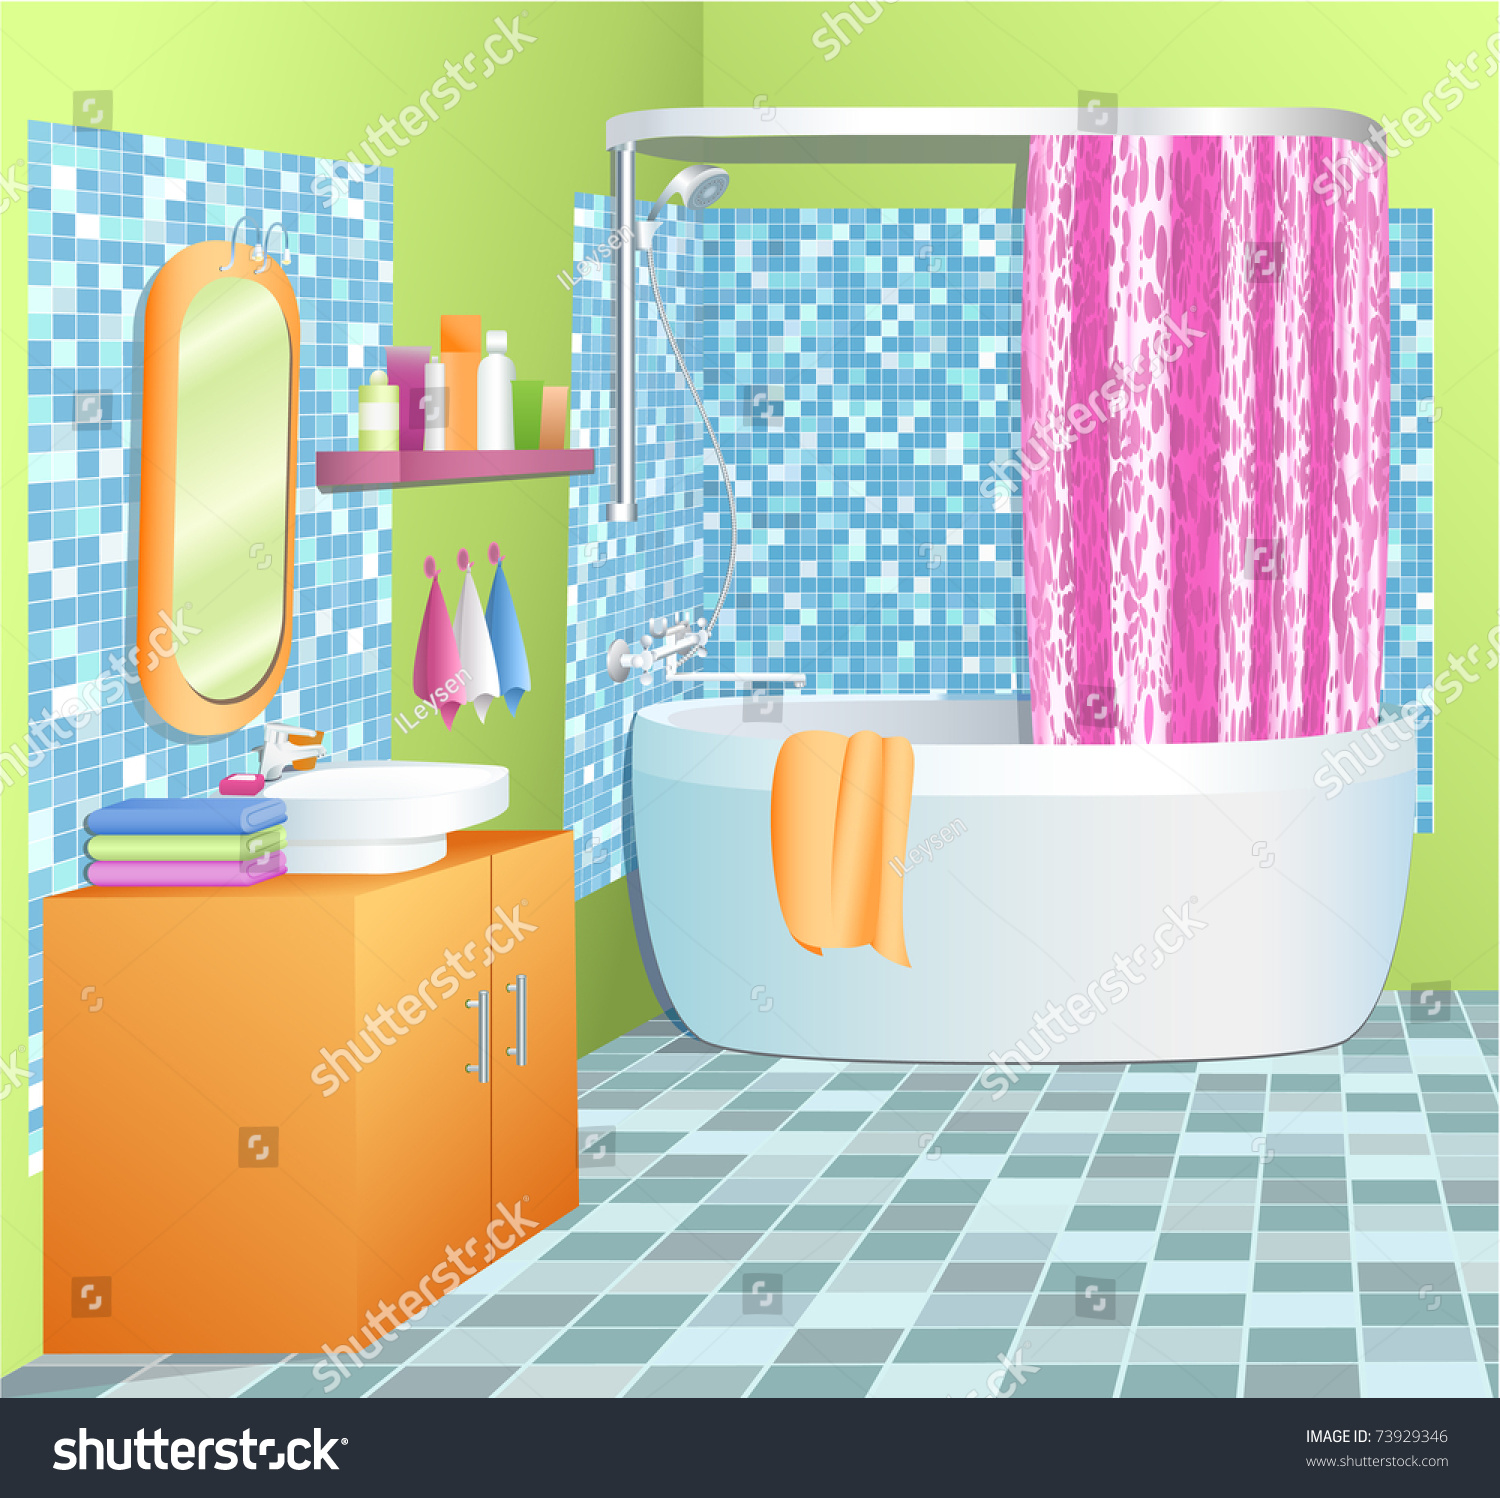 Popular  Art  Tile Ideas For Shower Bathroom Kitchen  ClipArt Best  ClipArt